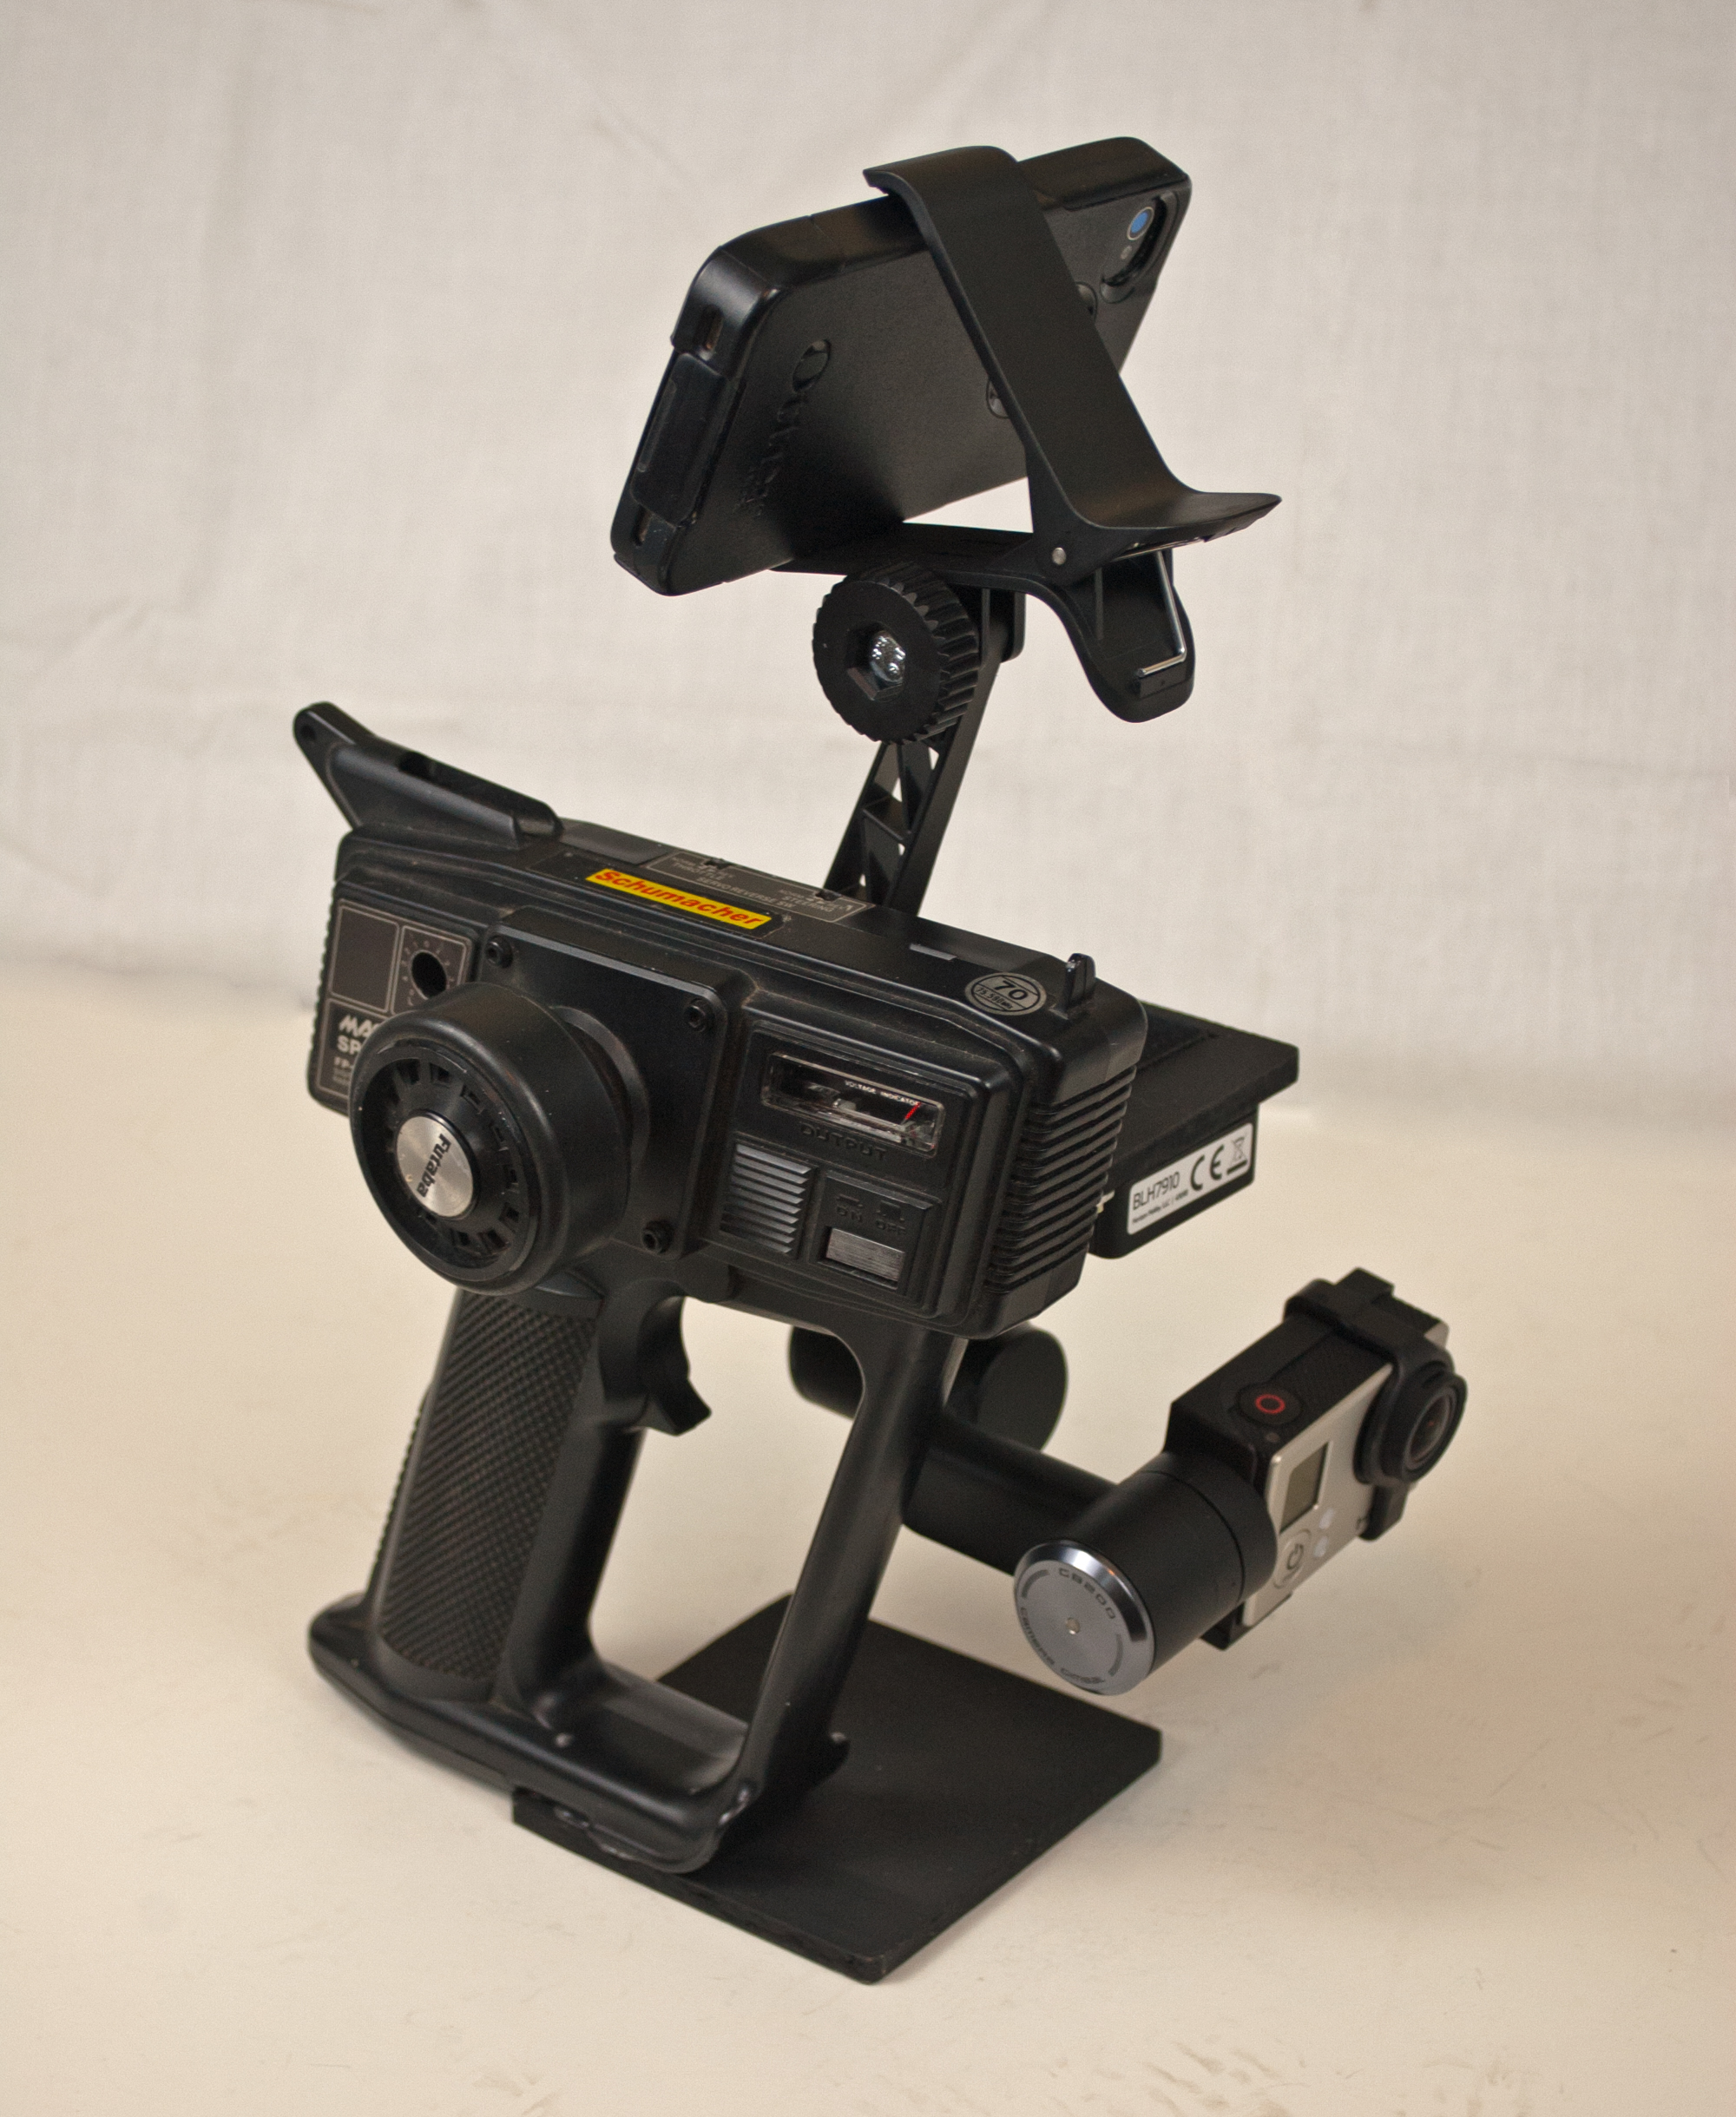 How to Make a Handheld Camera Gimbal Mount - Tested